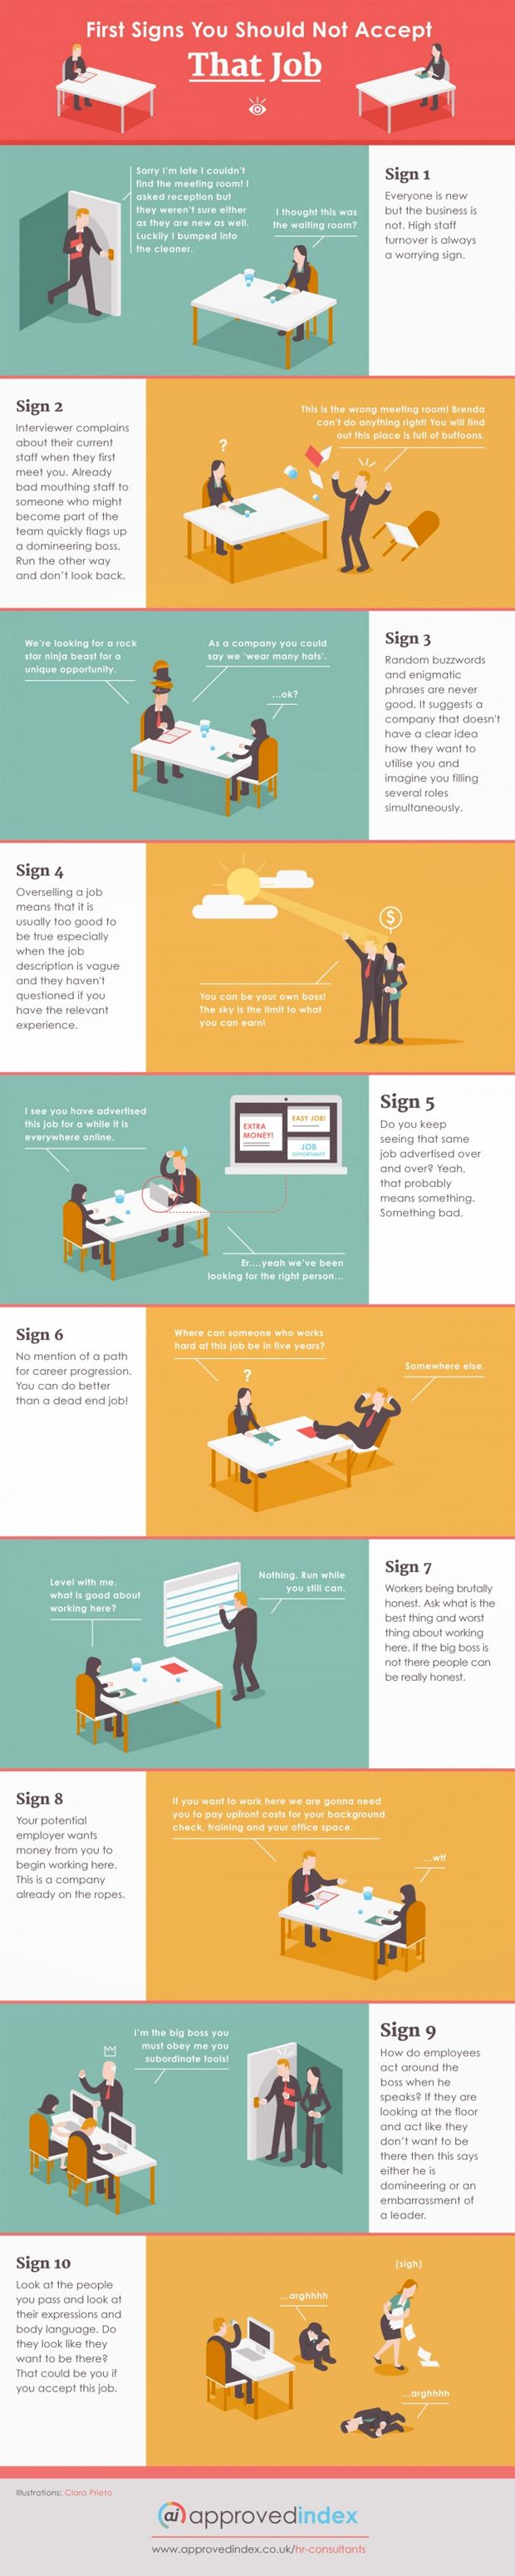 best ideas about job offer career resume and infographic signs you should not accept that job offer